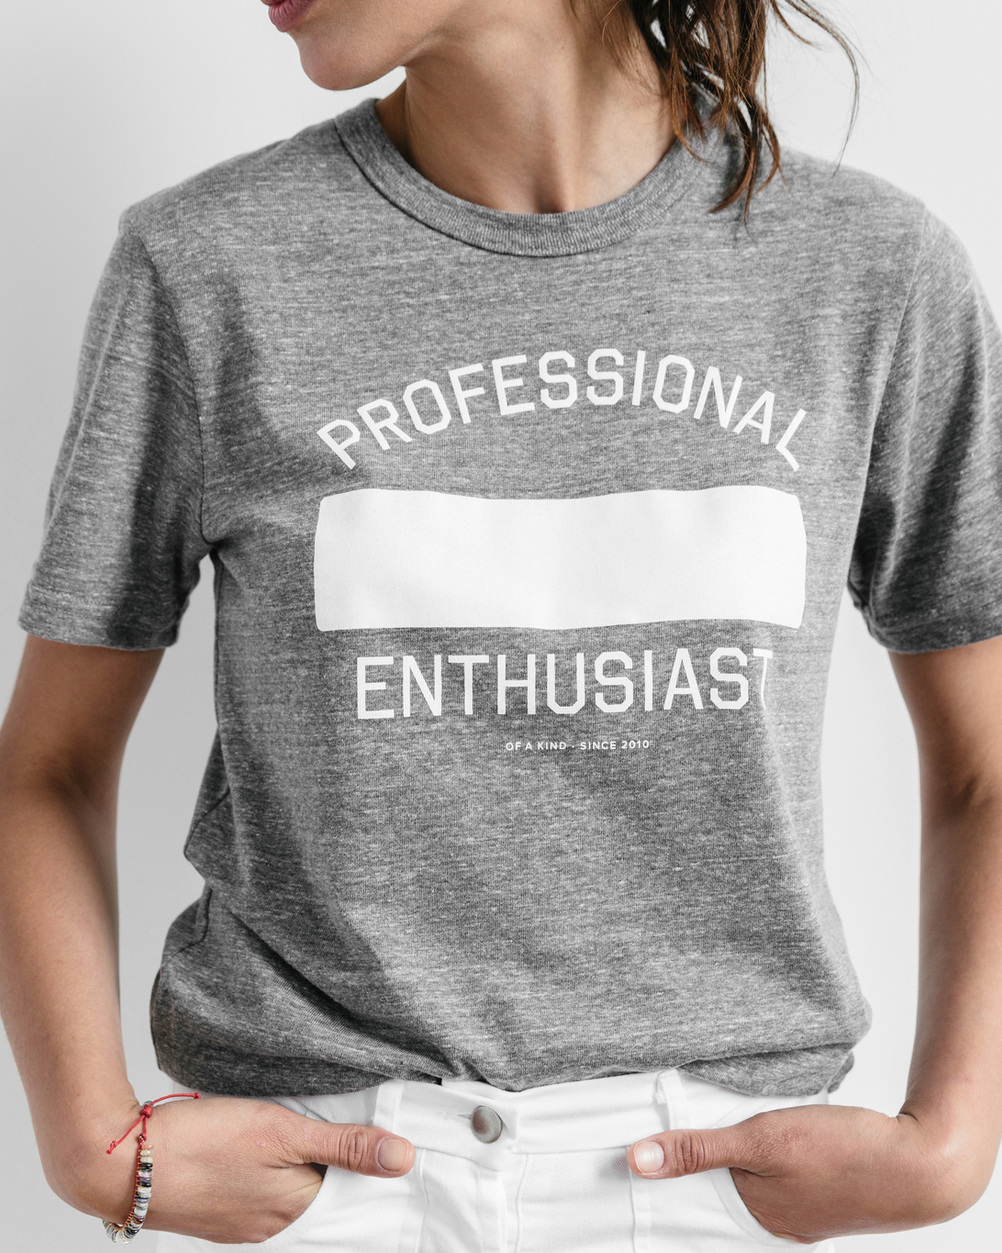 Professional Enthusiast Tee